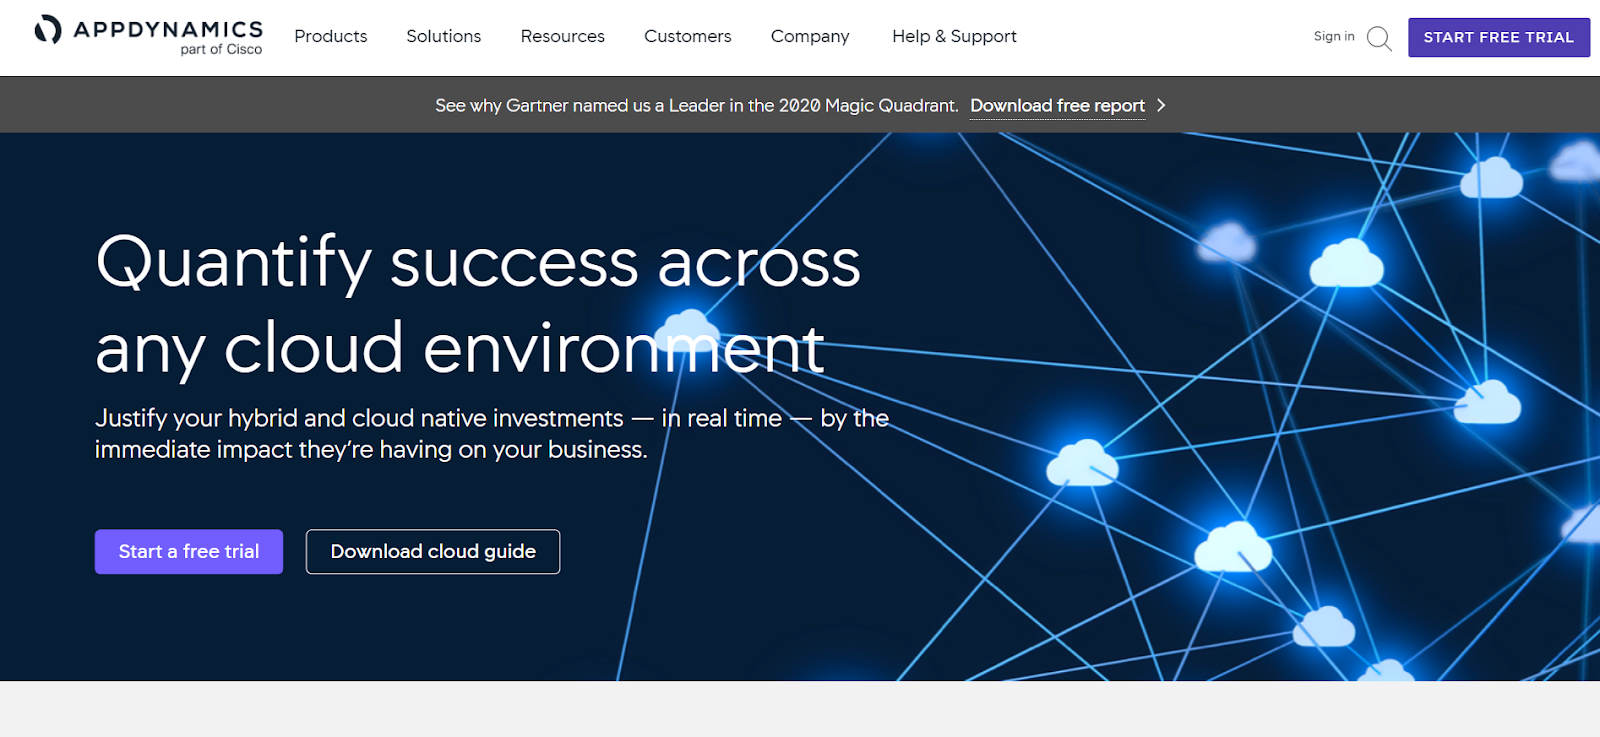 AppDynamics is one of the best Application Performance Monitoring Tools in the market